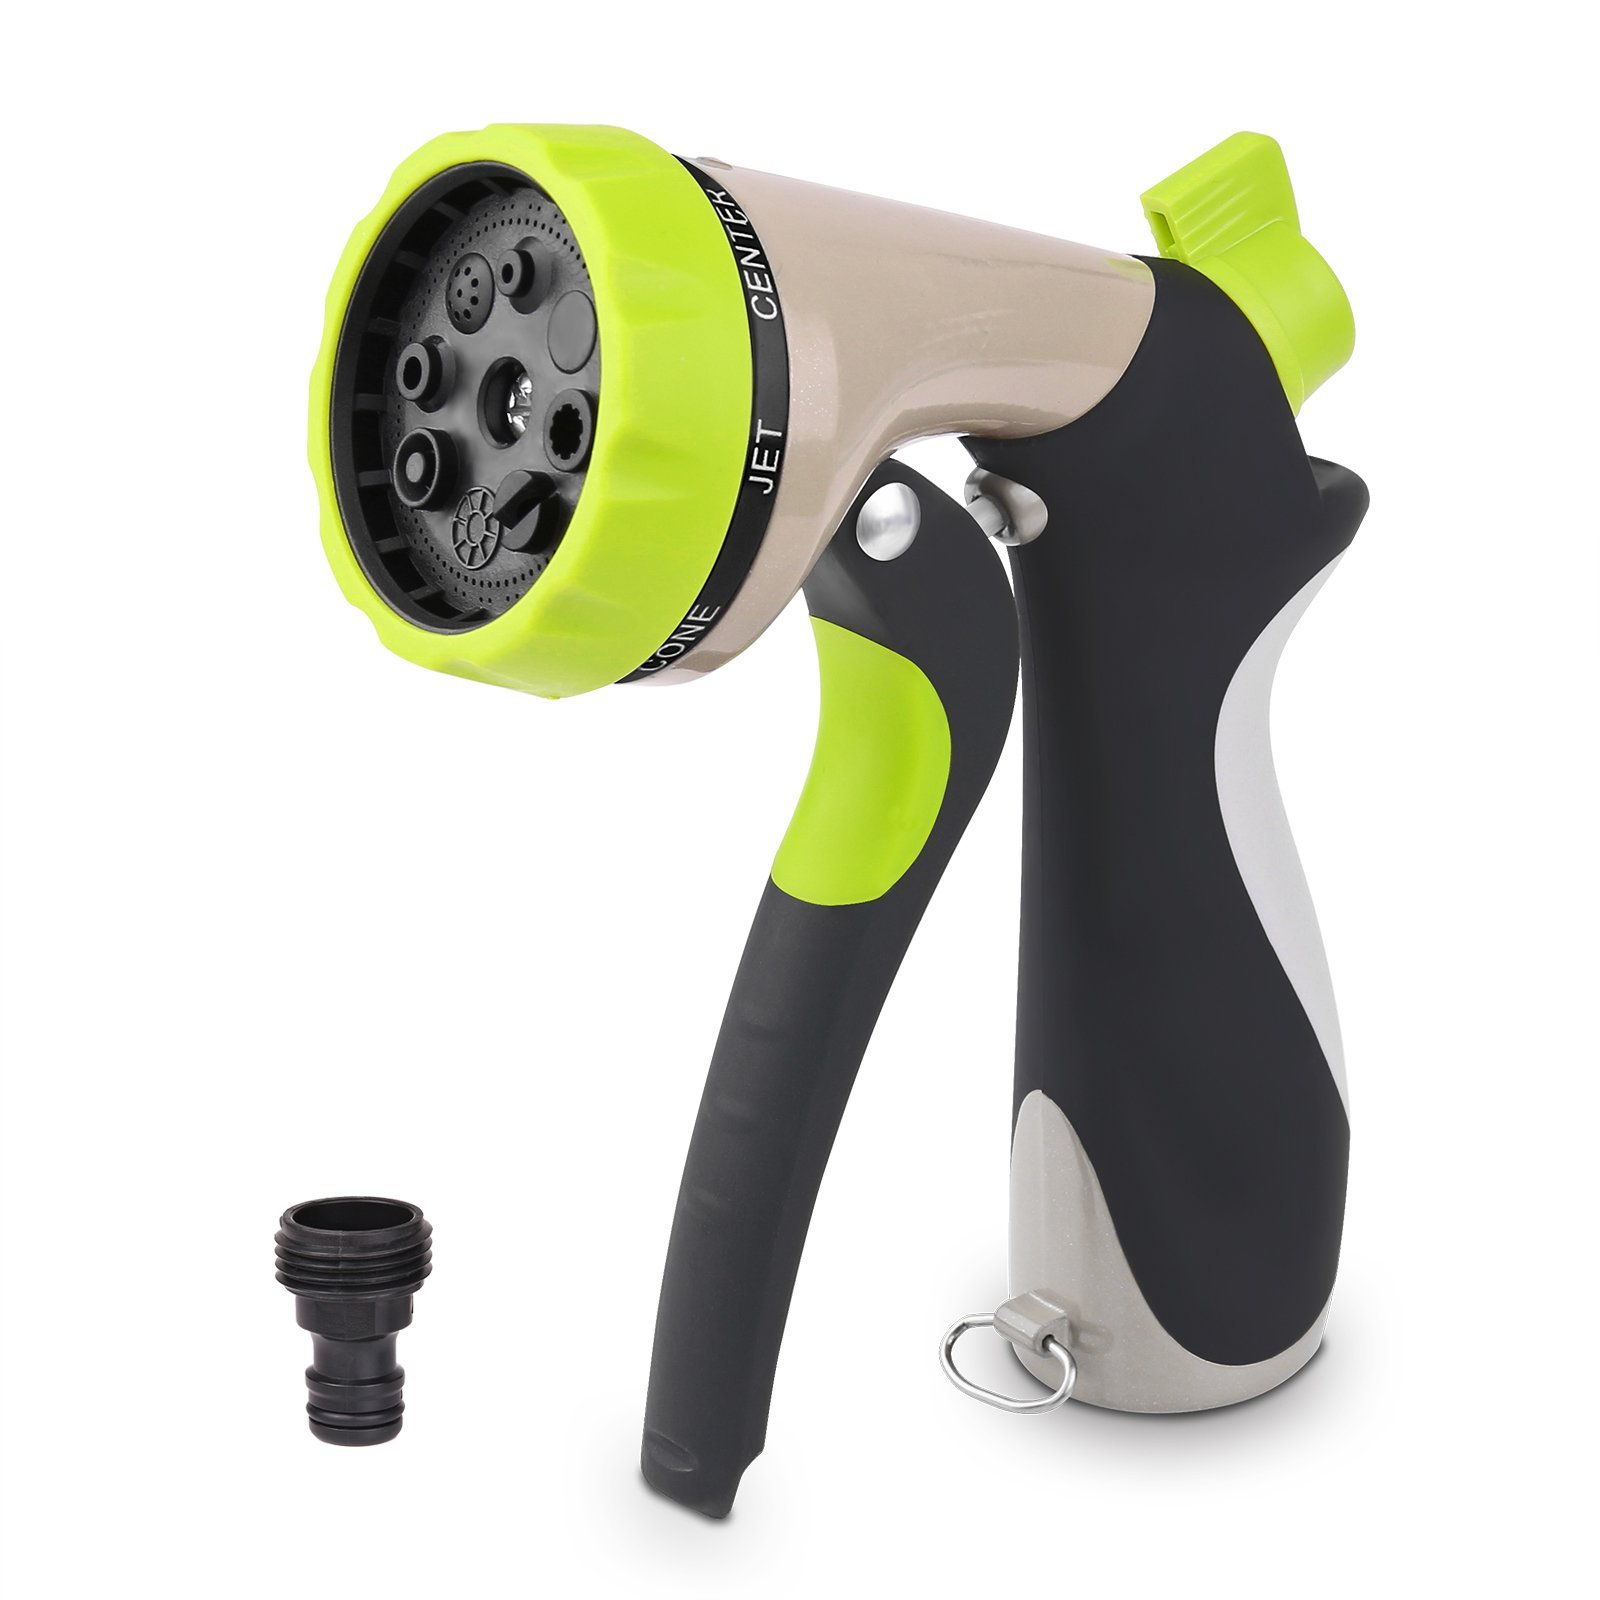 LemonBest Garden Hose Nozzle High Pressure Watering Hand Sprayer with Flow Control for Car Washing Lawn Flowers Gardening Cleaning Pet Washing (Light Green Style)